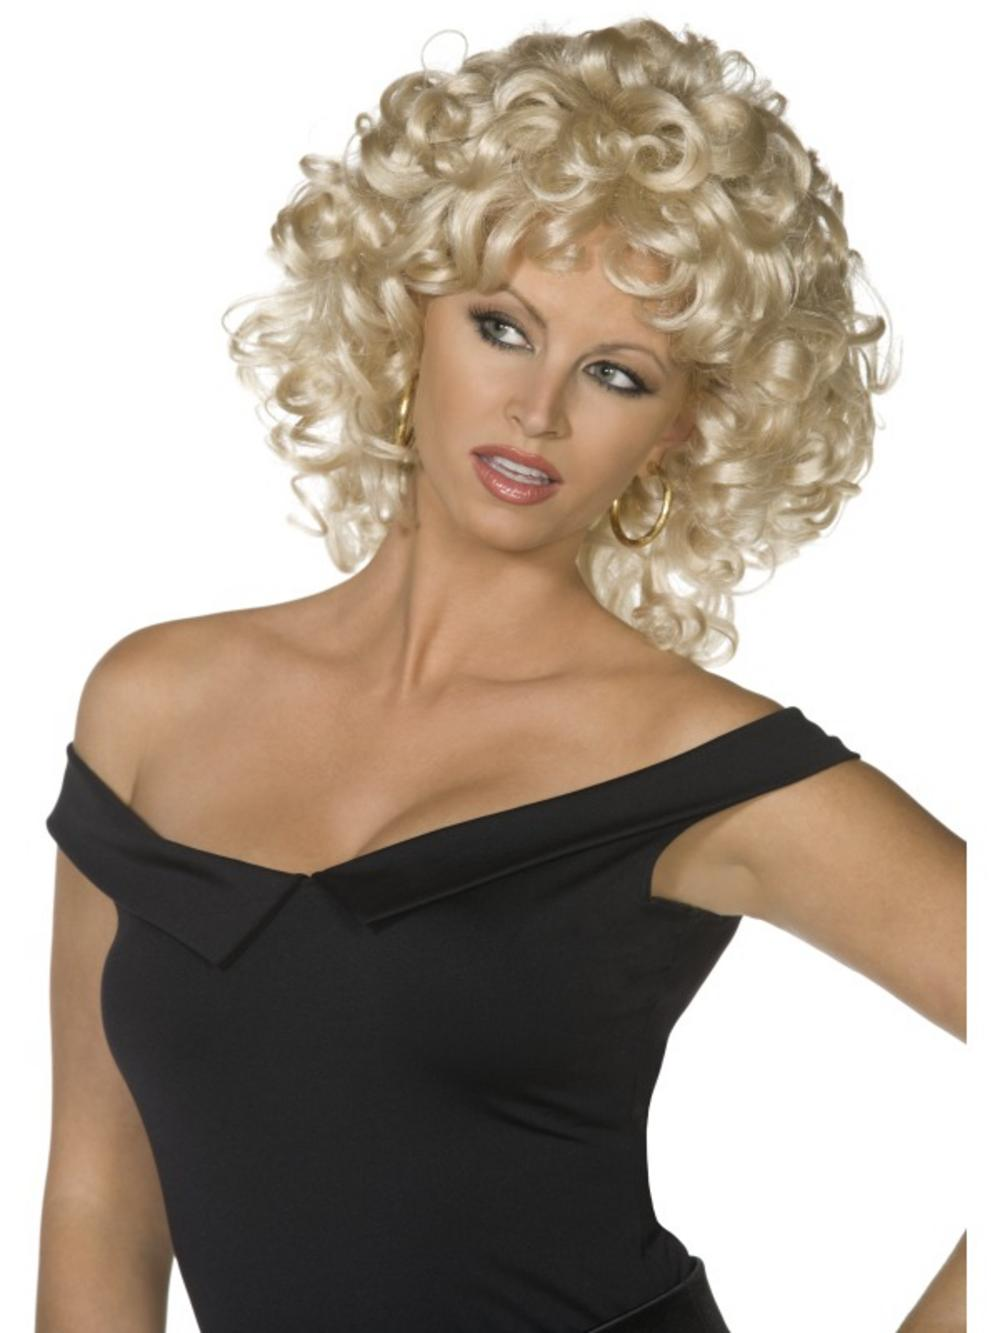 Grease Sandy Blonde Curly Wig 50s Accessories Mega